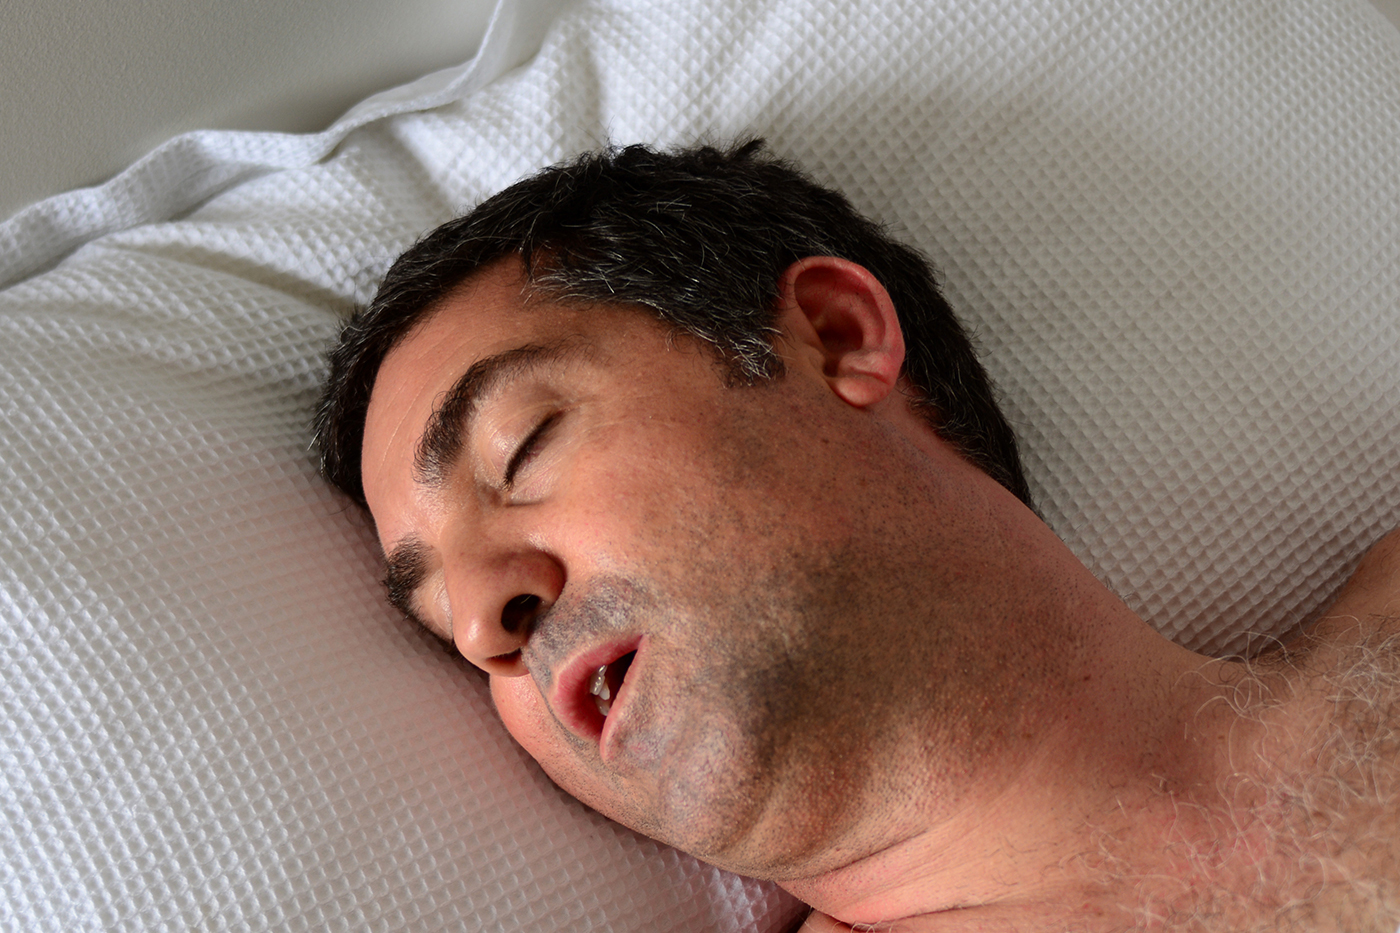 central sleep apnea - surgical sleep solutions